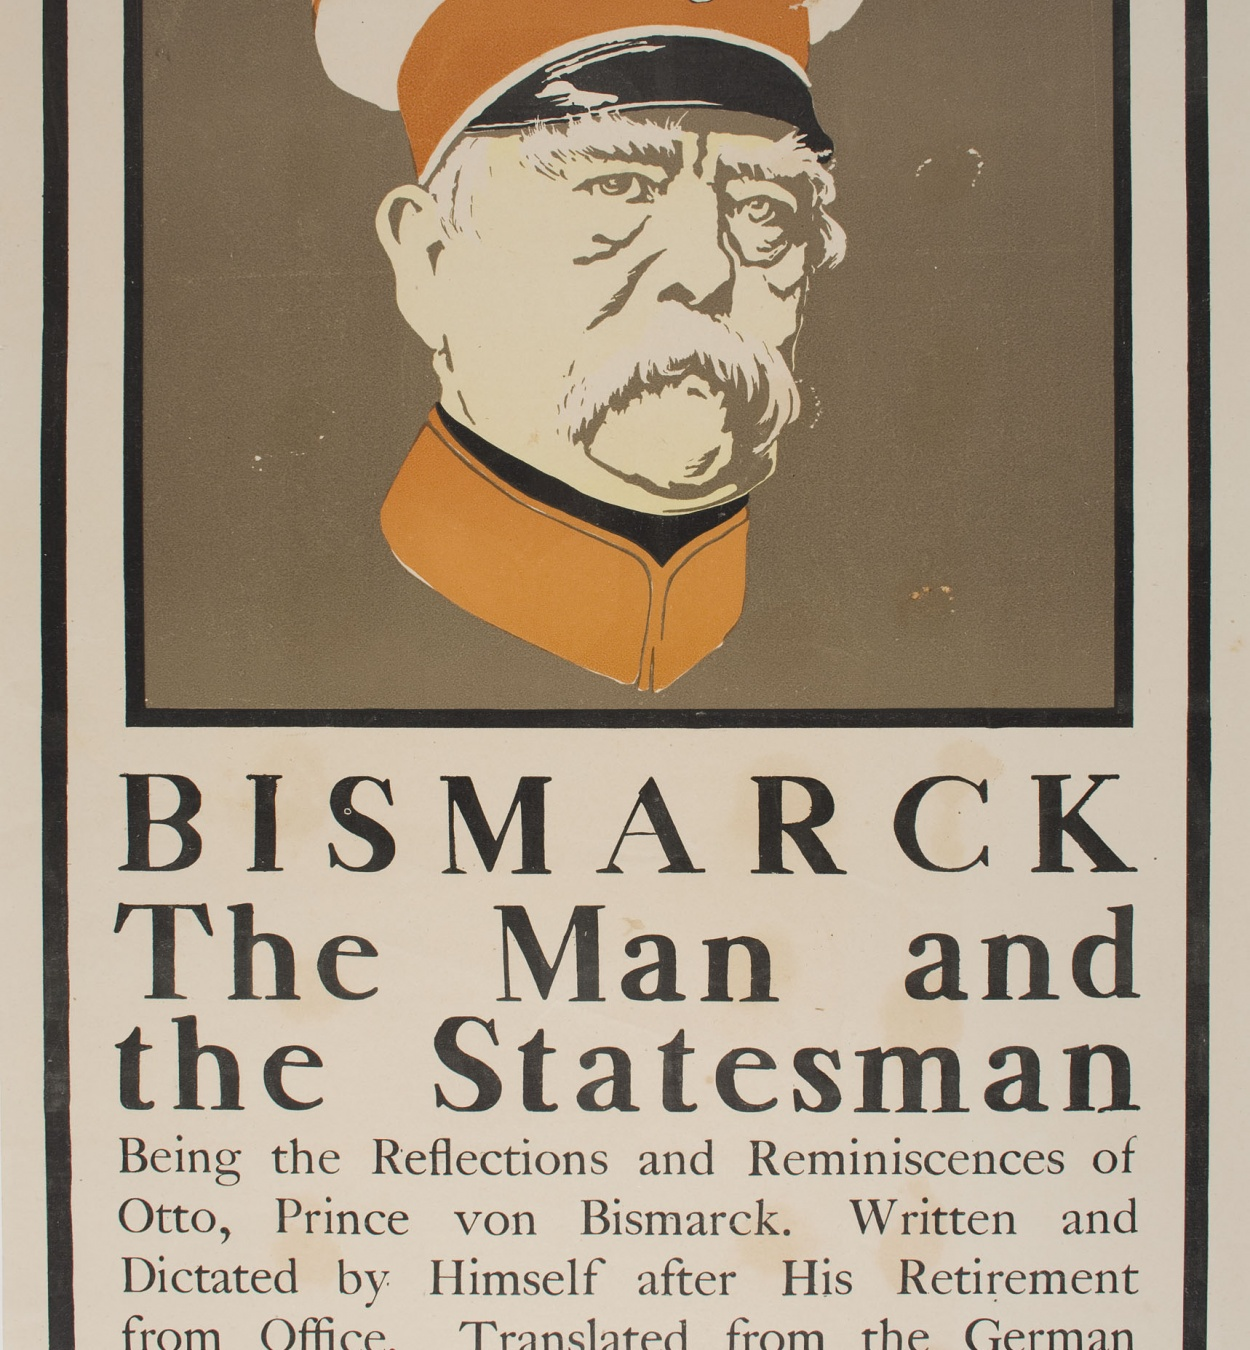 Anònim - Bismarck The Man and the Statesman - 1899